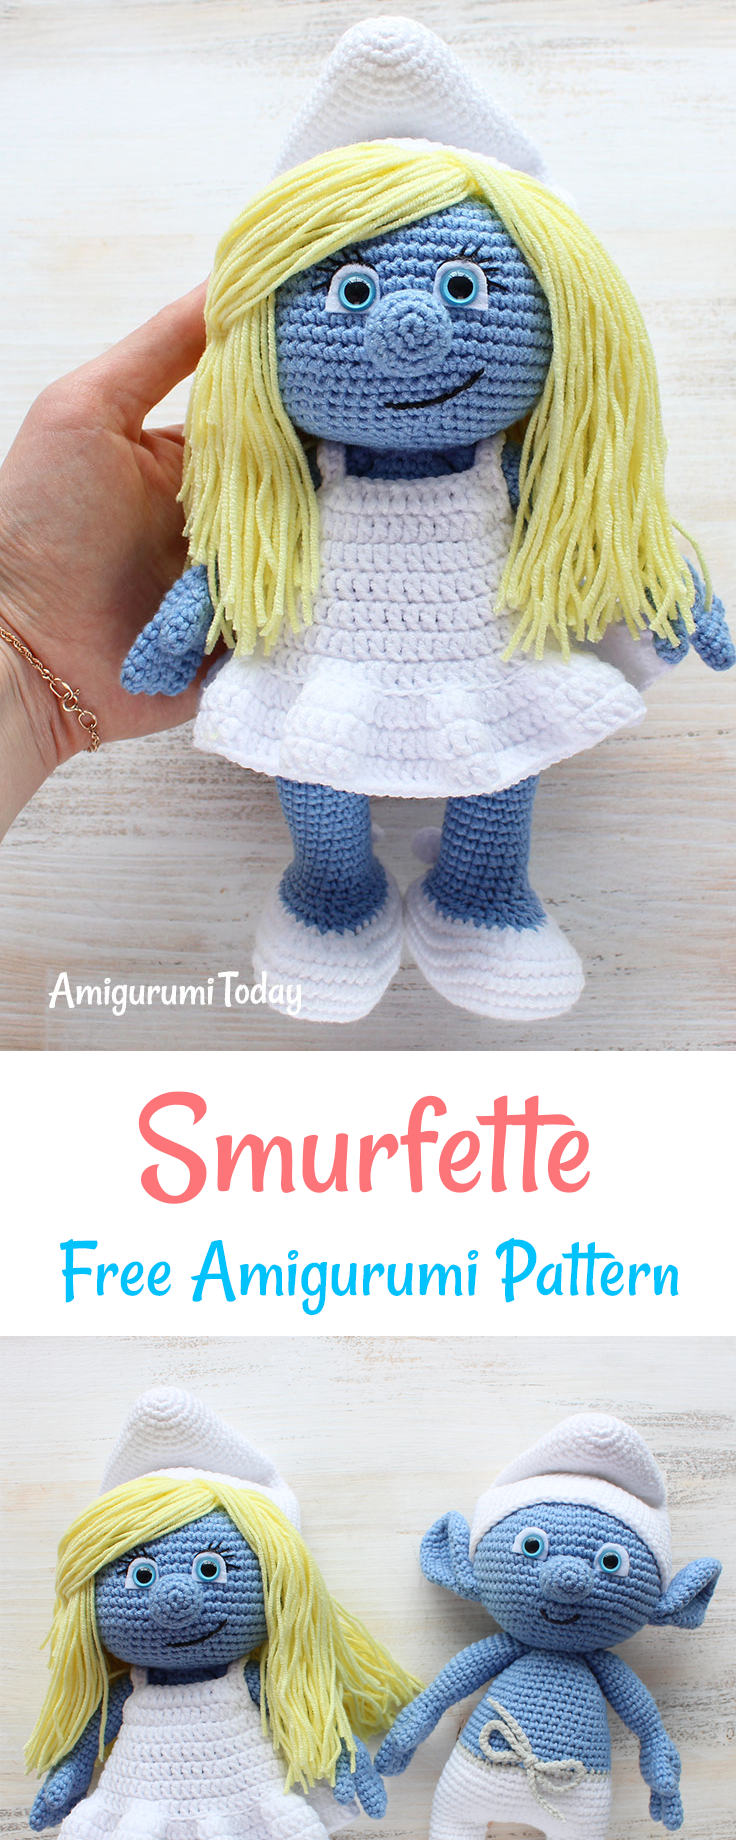 Let your mind wander into the fancy world of the smurfs with this schtroumpfette let your mind wander into the fancy world of the smurfs with this super soft crochet smurfette use our amigurumi pattern to create the bankloansurffo Image collections